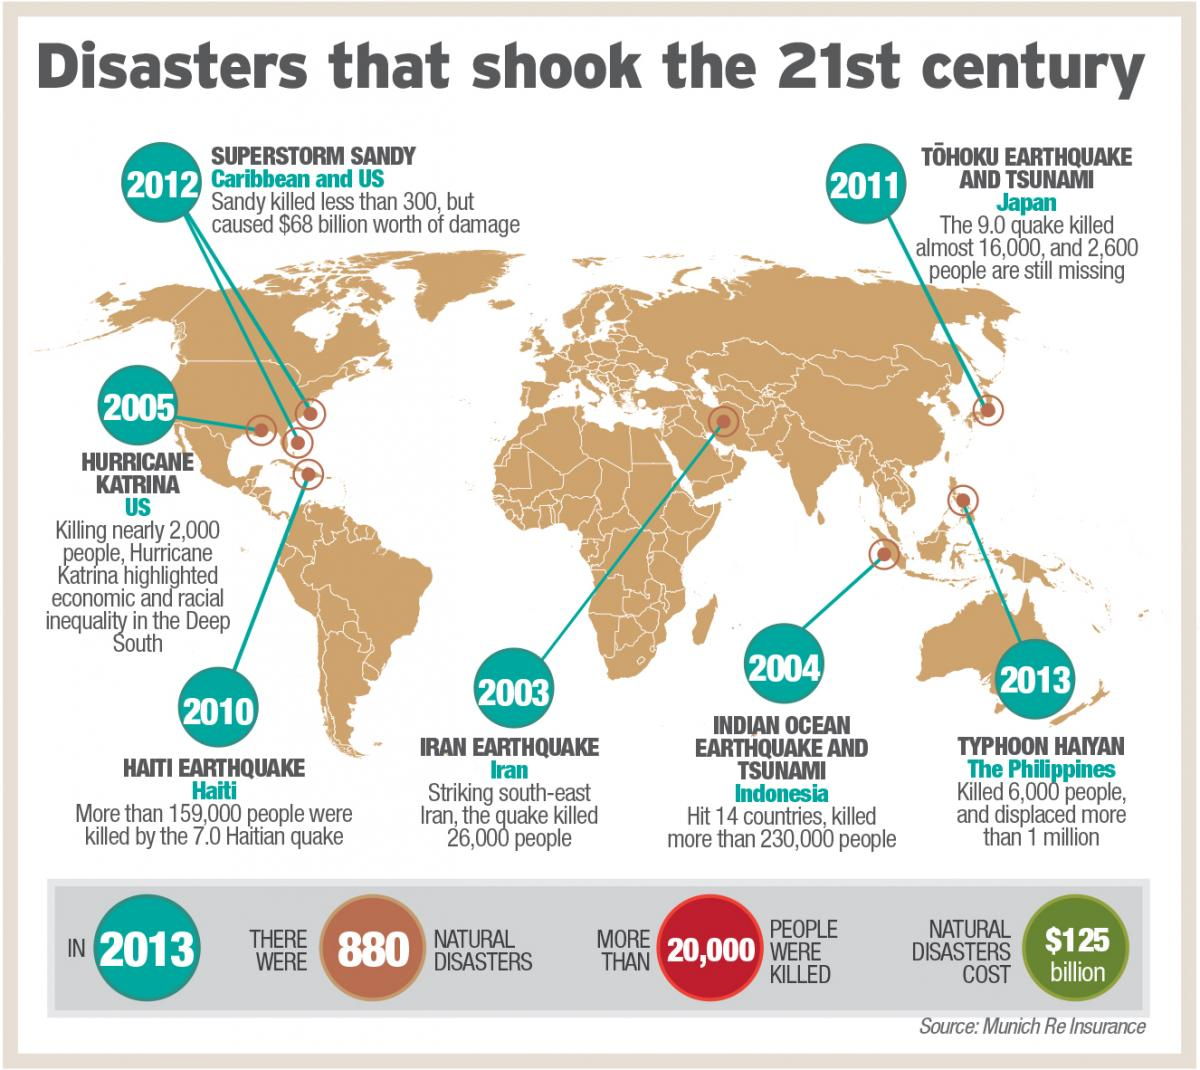 Disasters that shook the 21st century - Click to enlarge